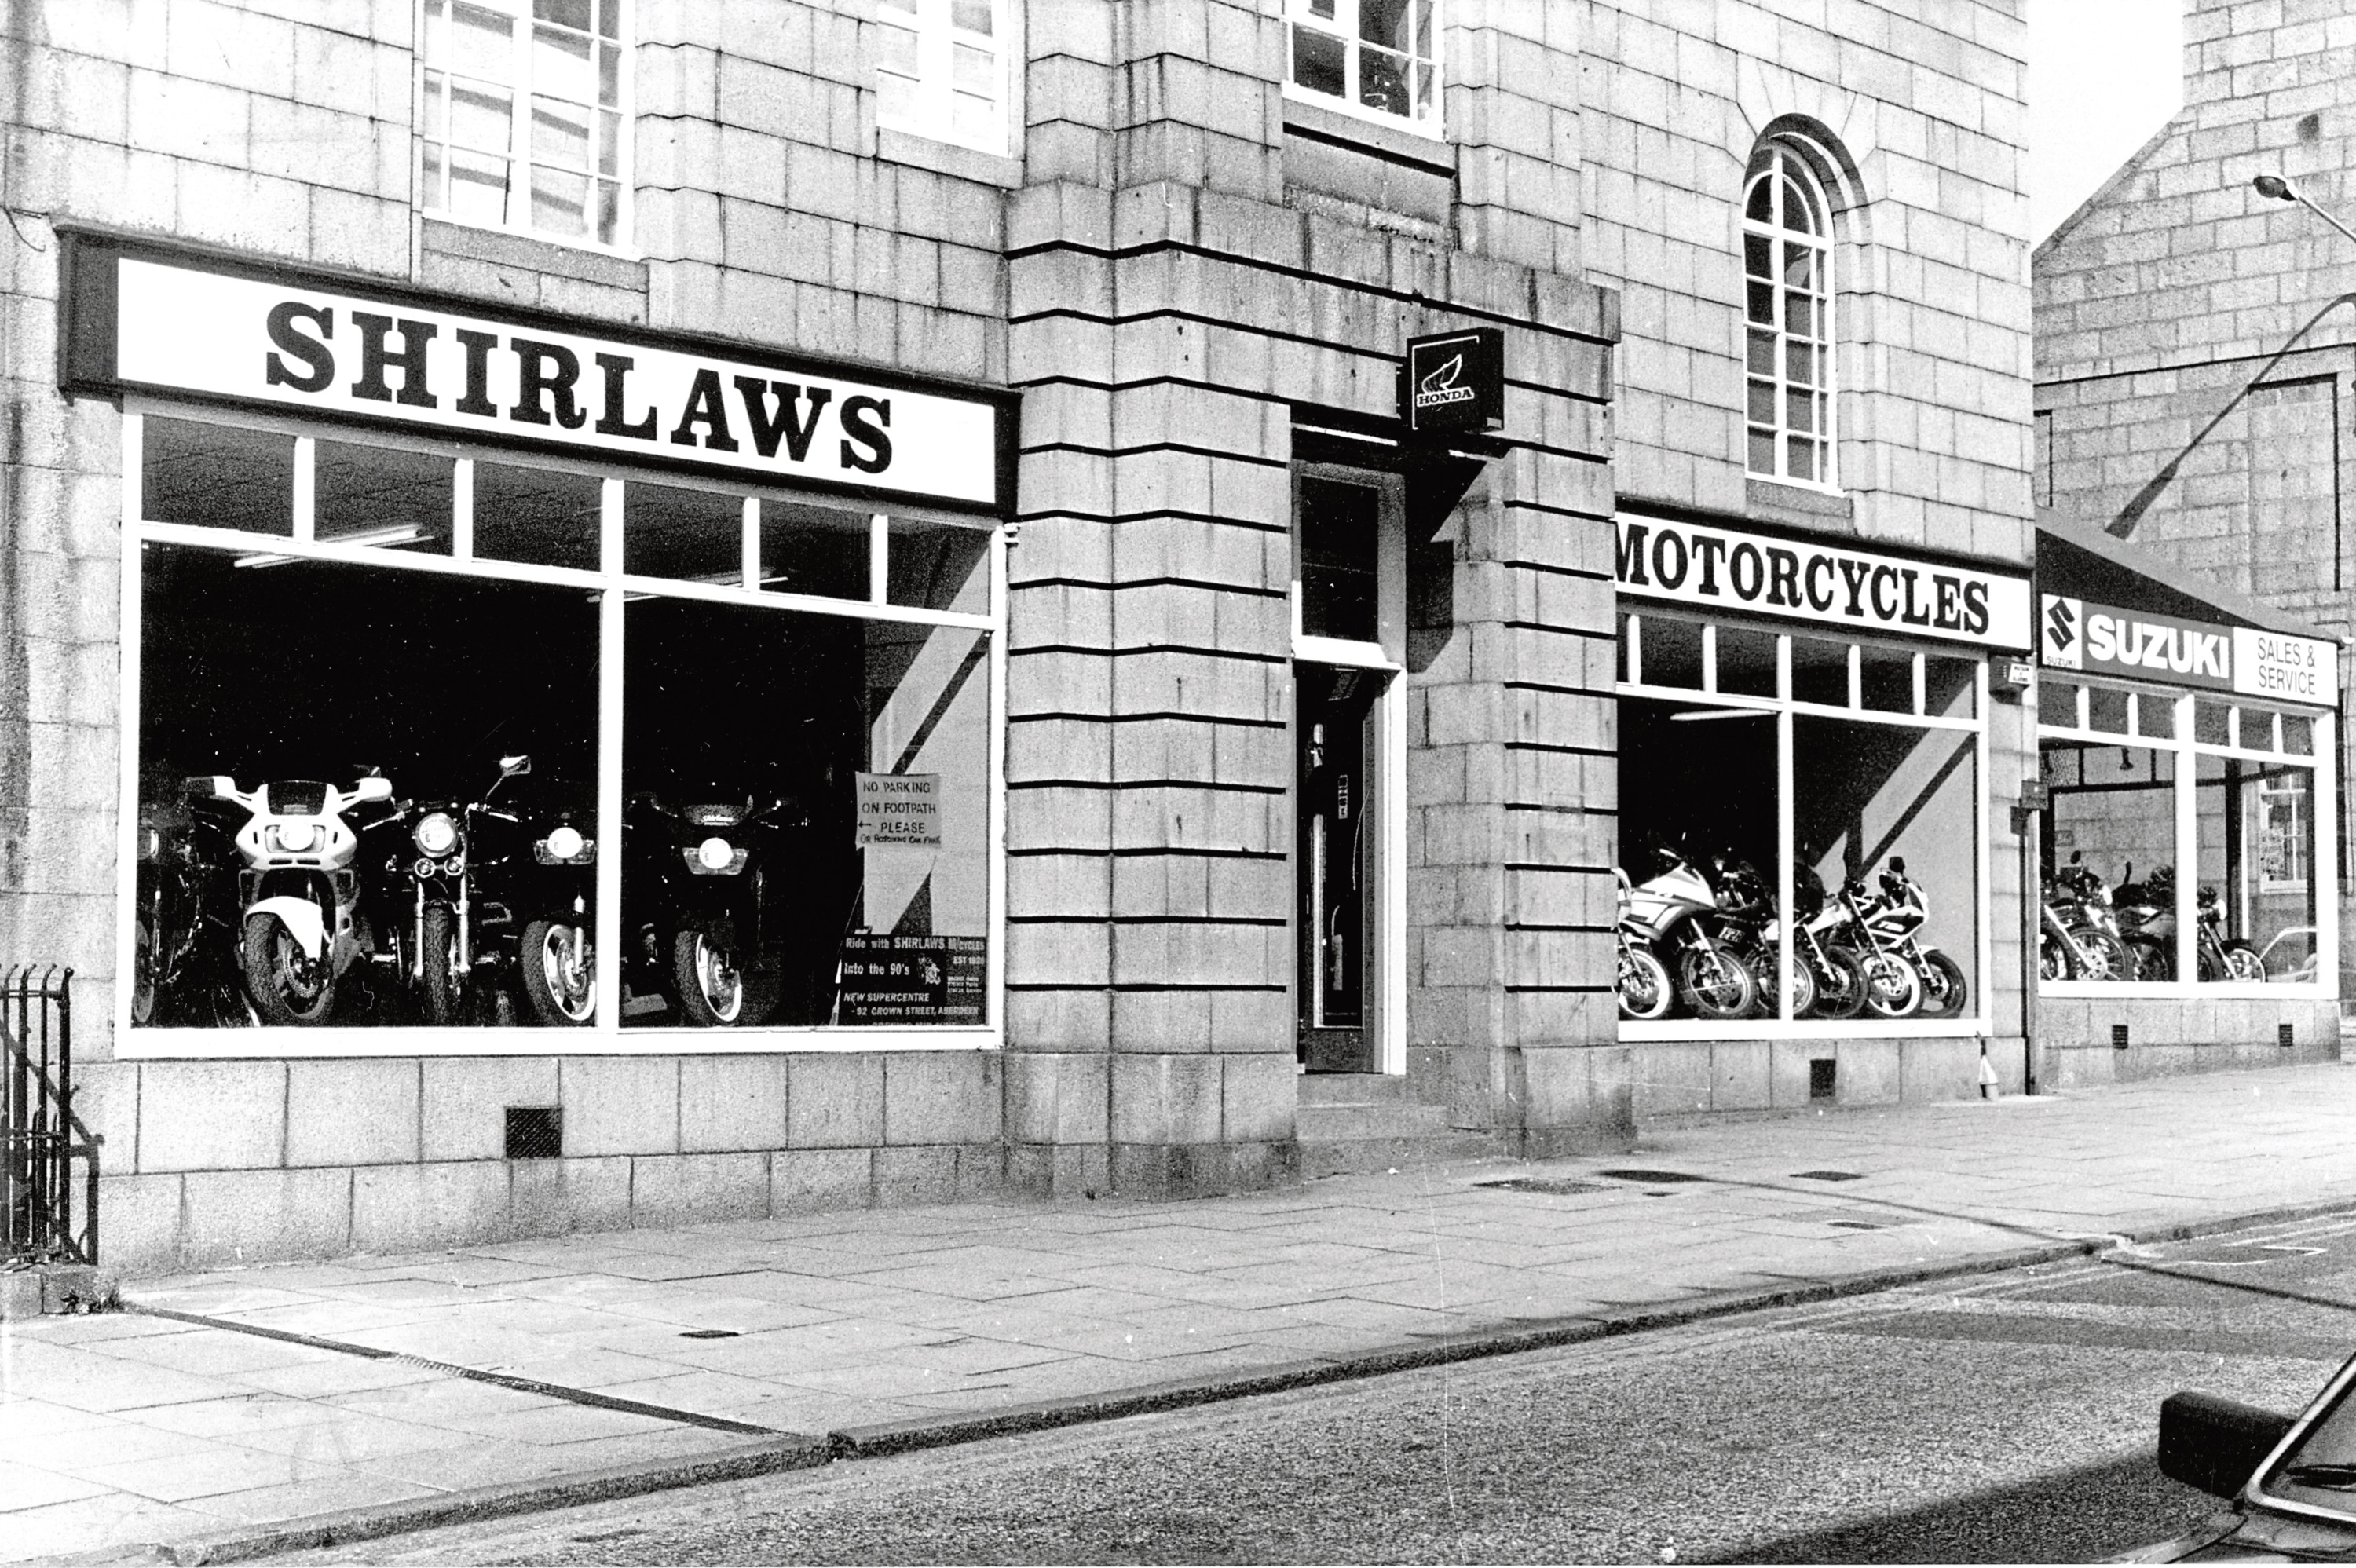 Shirlaw's is celebrating 90 years as a family business.